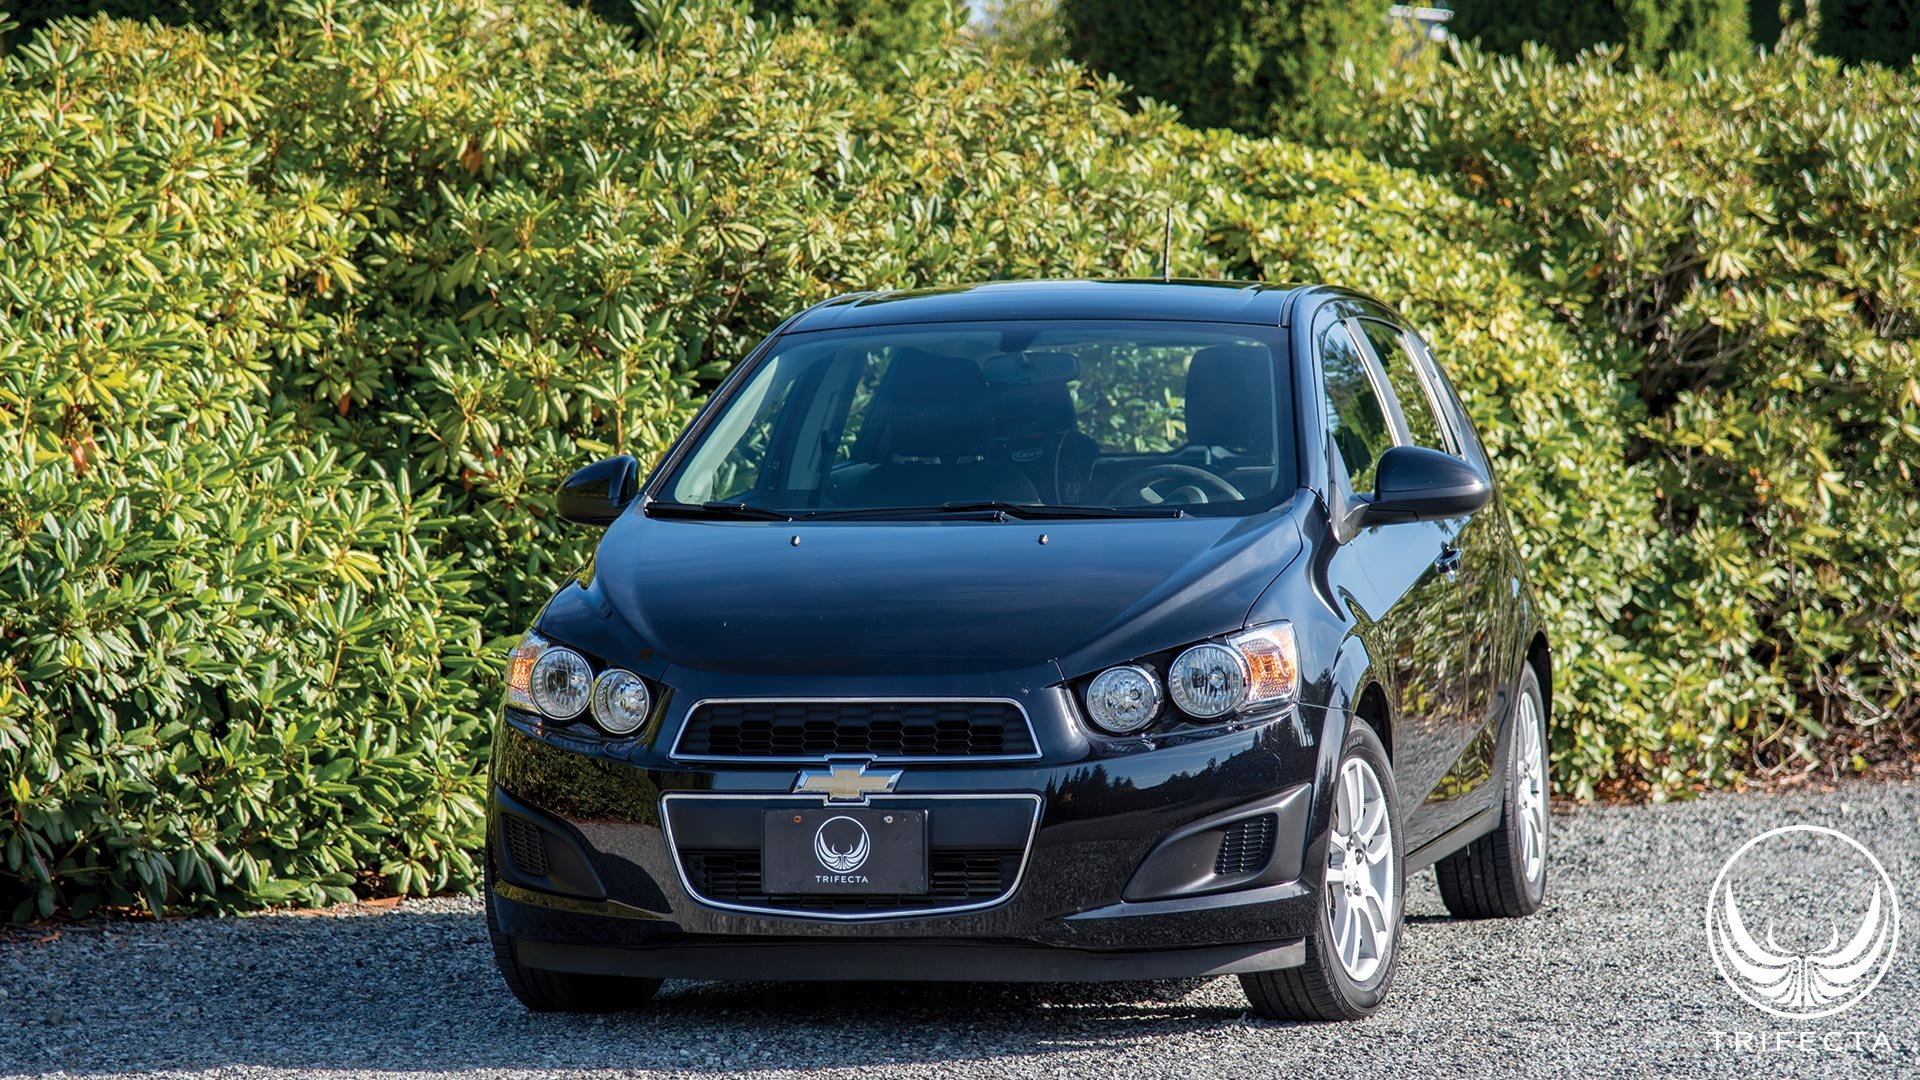 Product Review: 2012--2020 Chevrolet Sonic - 1.4L Turbo Advantage